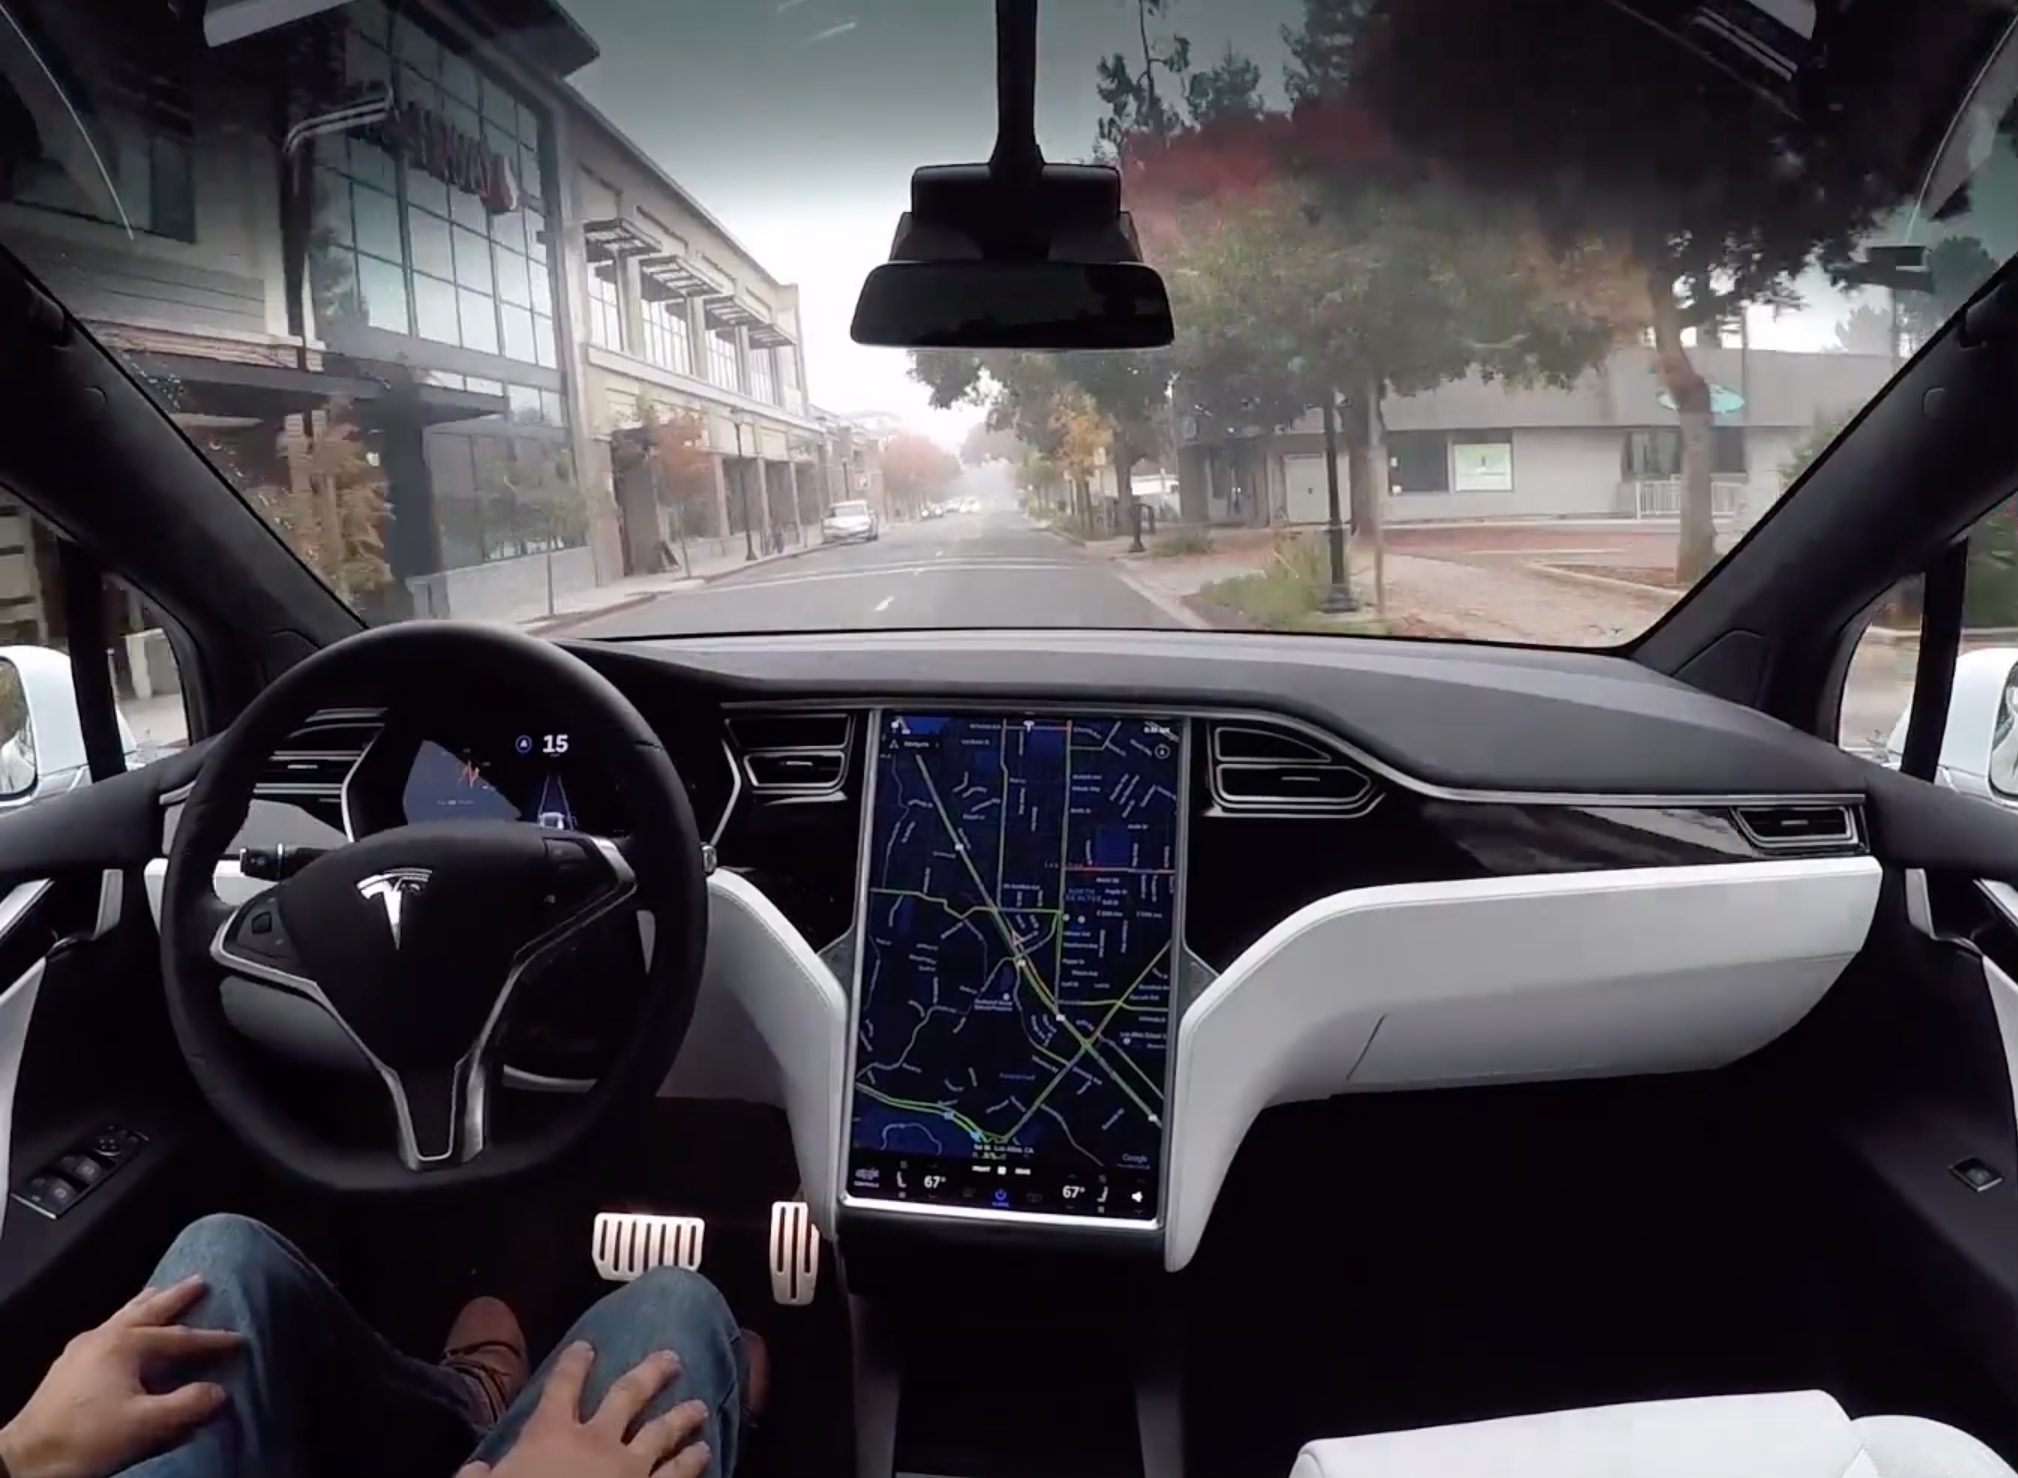 Tesla Self-Driving Rumors Heat Up as 'Hardware 3' Spotted in Data Logs